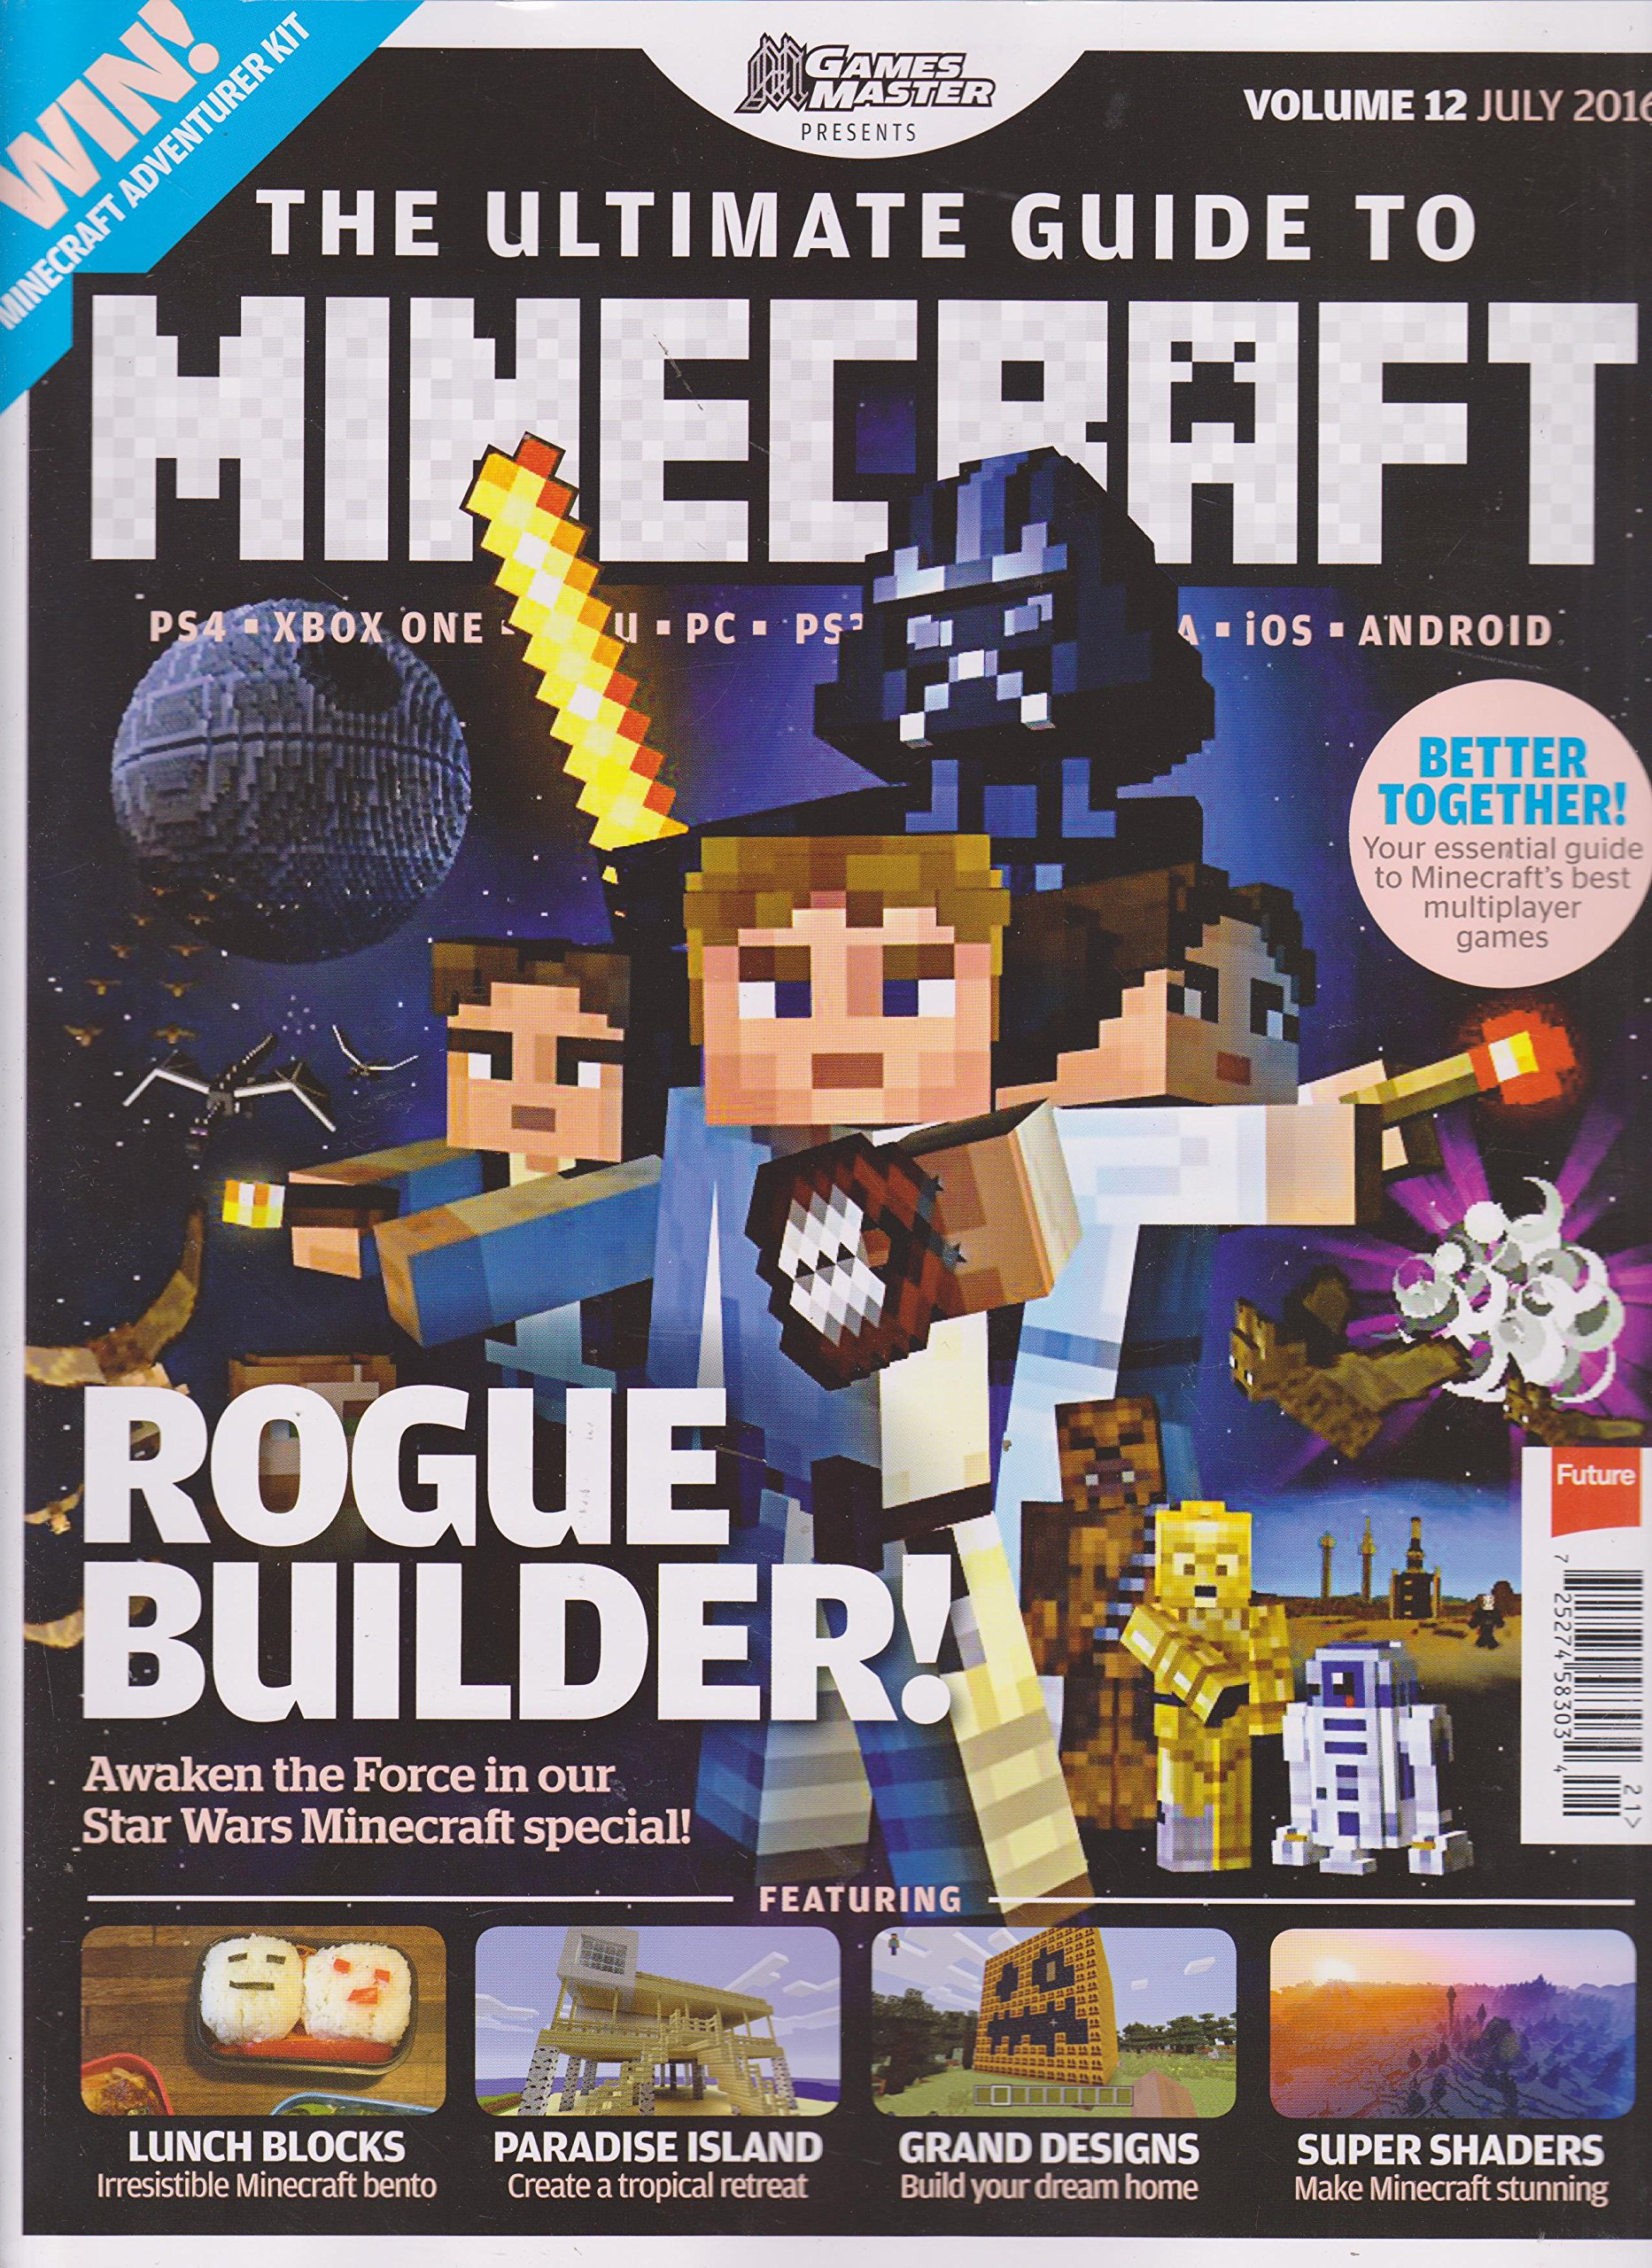 Games Master Presents The Ultimate Guide to Minecraft Volume 12 July 2016 ebook